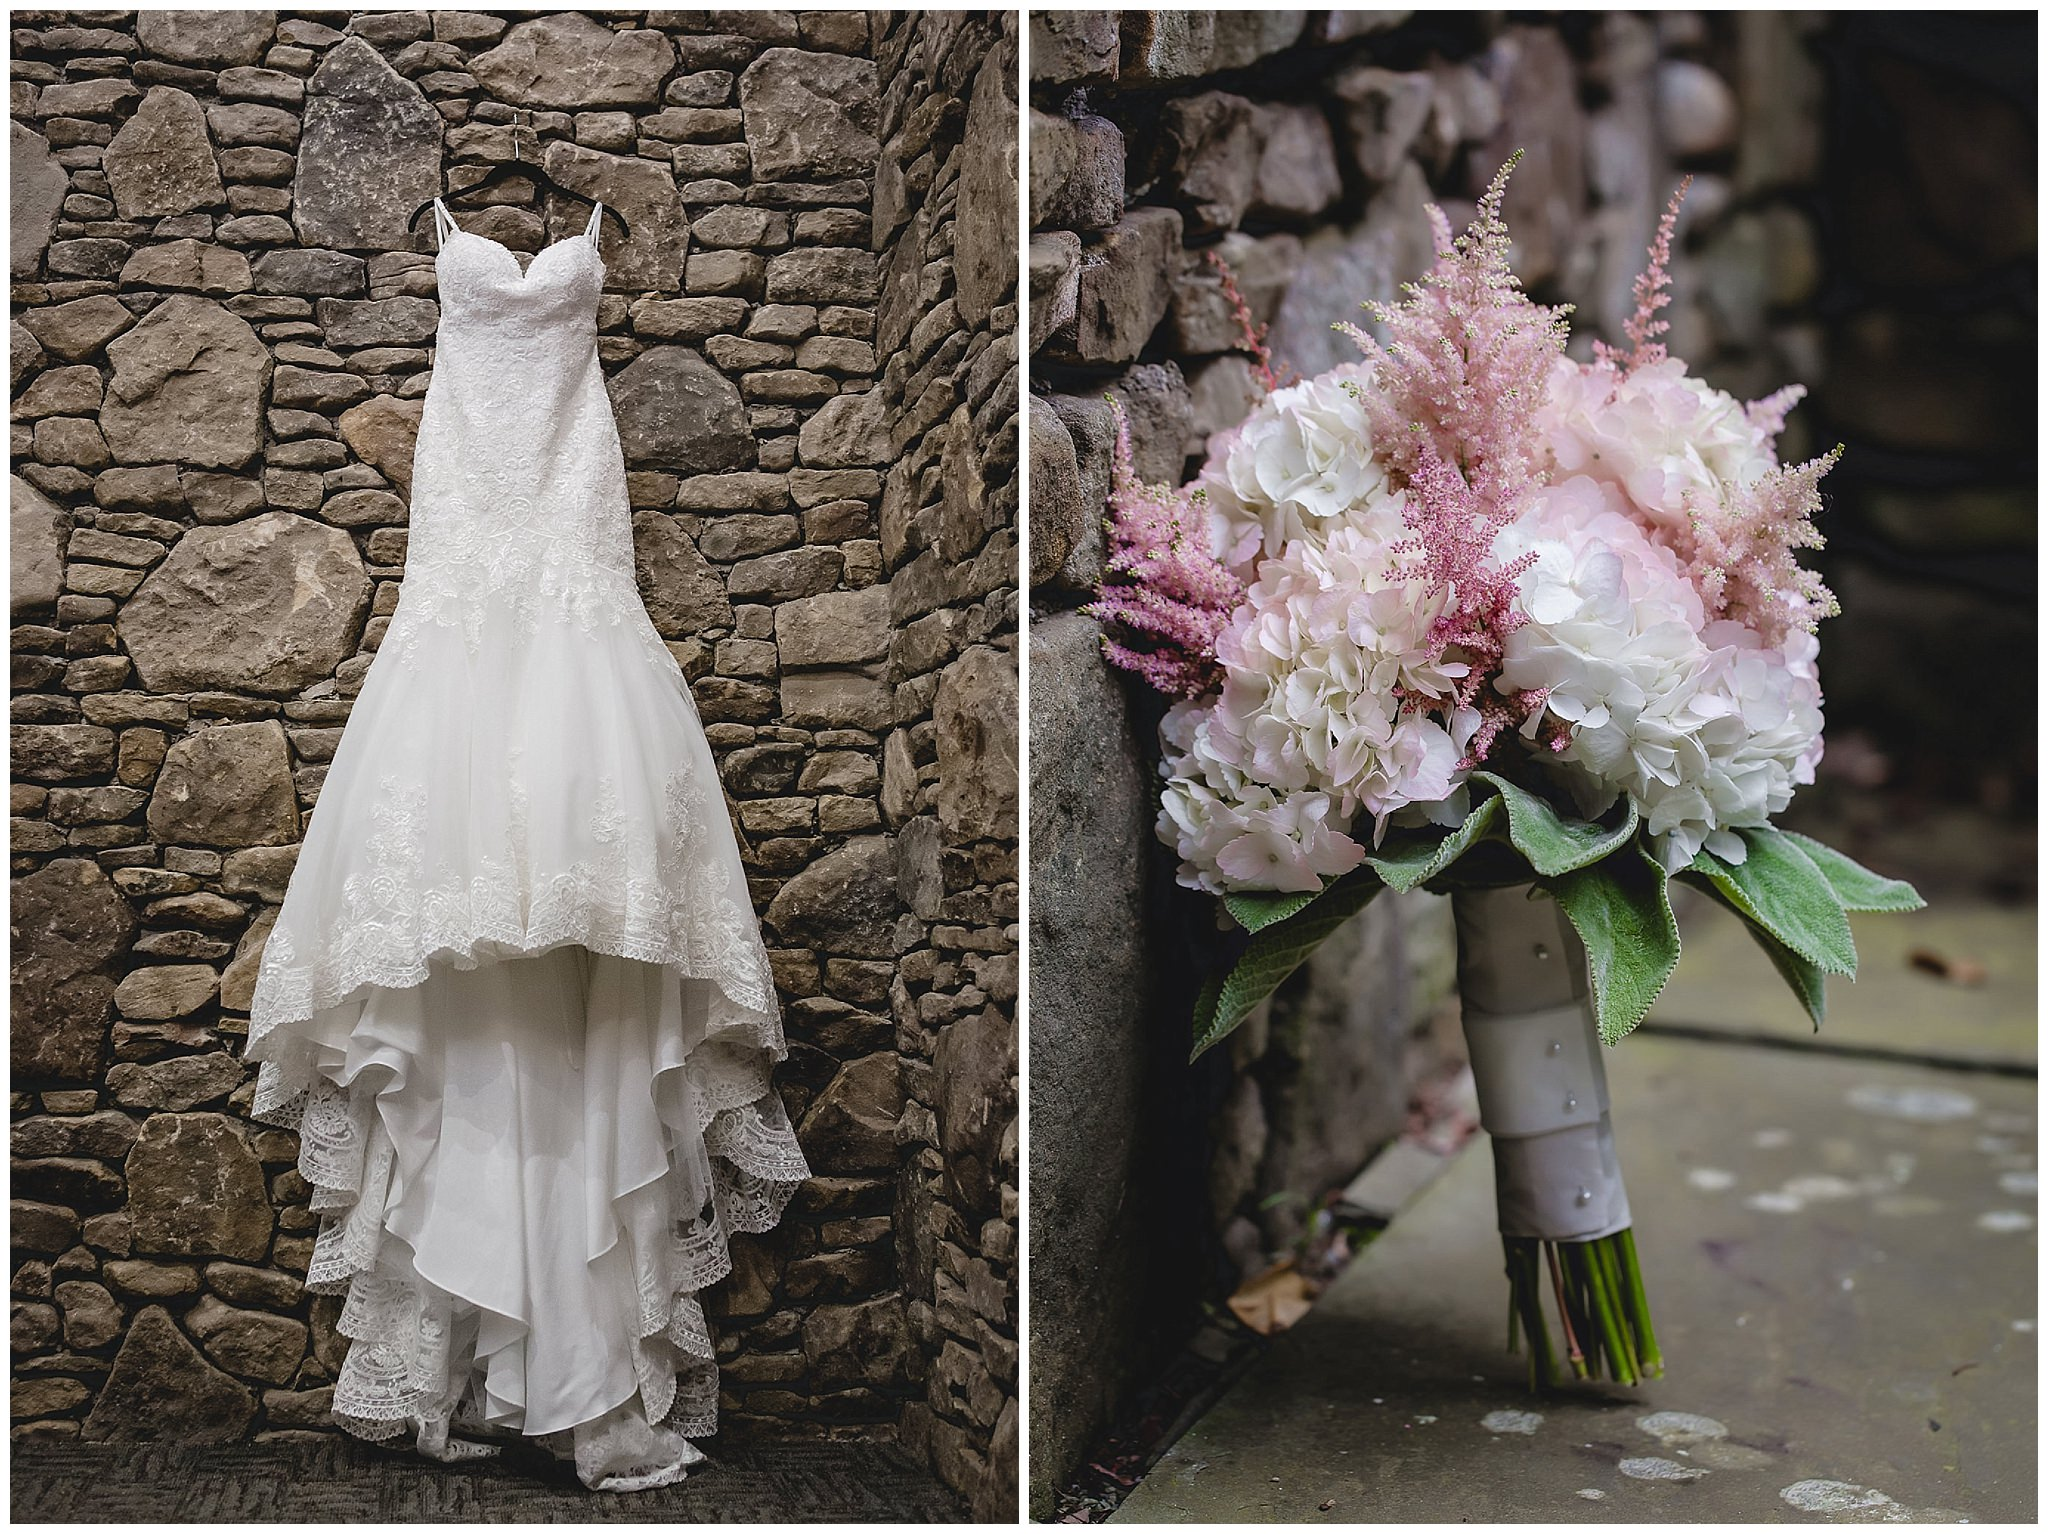 Lace wedding dress and pink bridal bouquet at Hidden Valley Resort